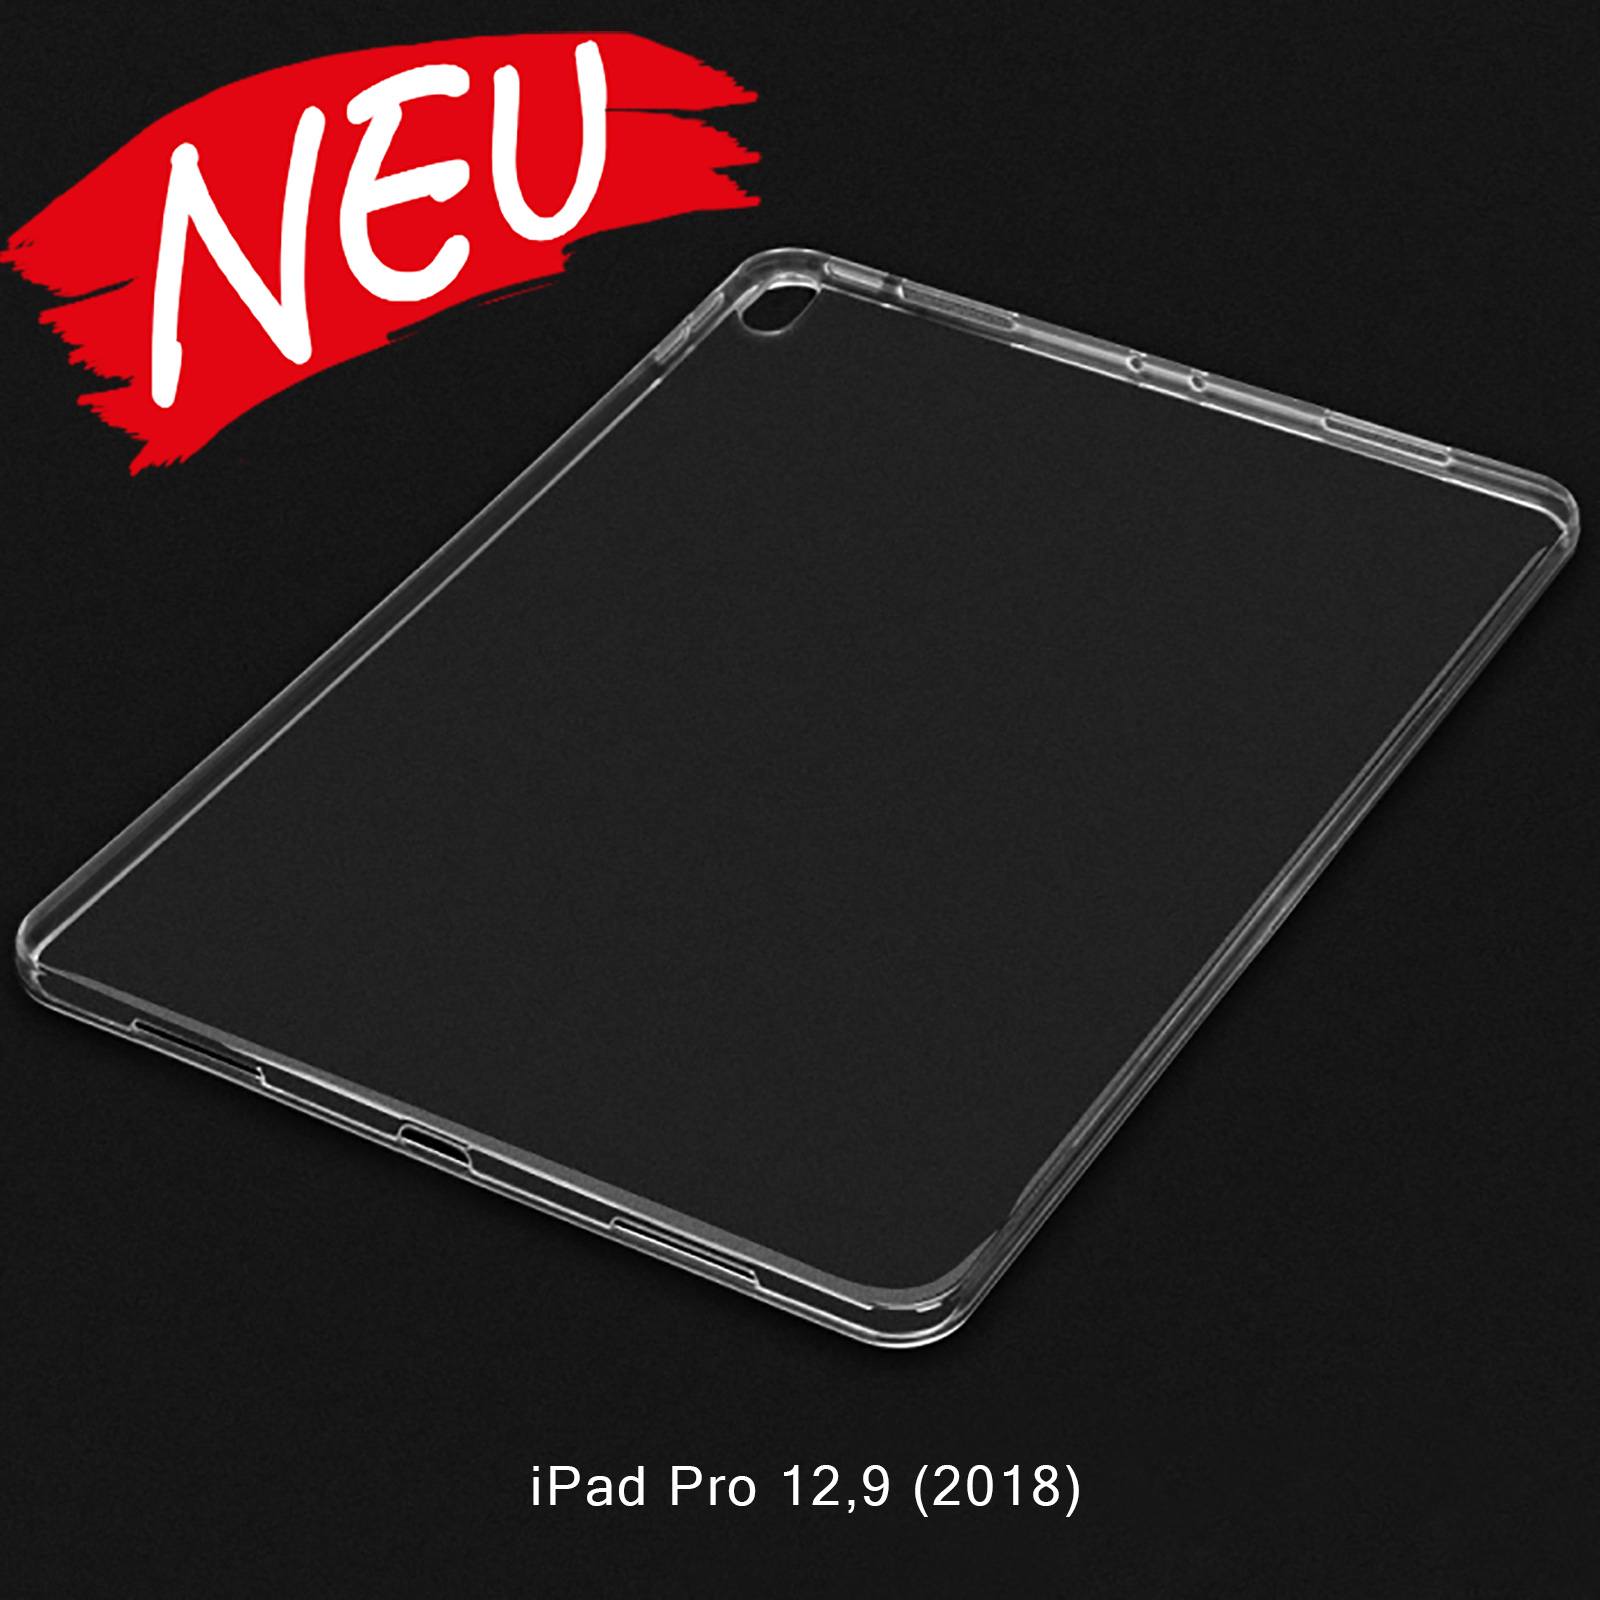 iPad Pro 12,9 (2018) Slim dünne TPU Gel Hülle - Transparent